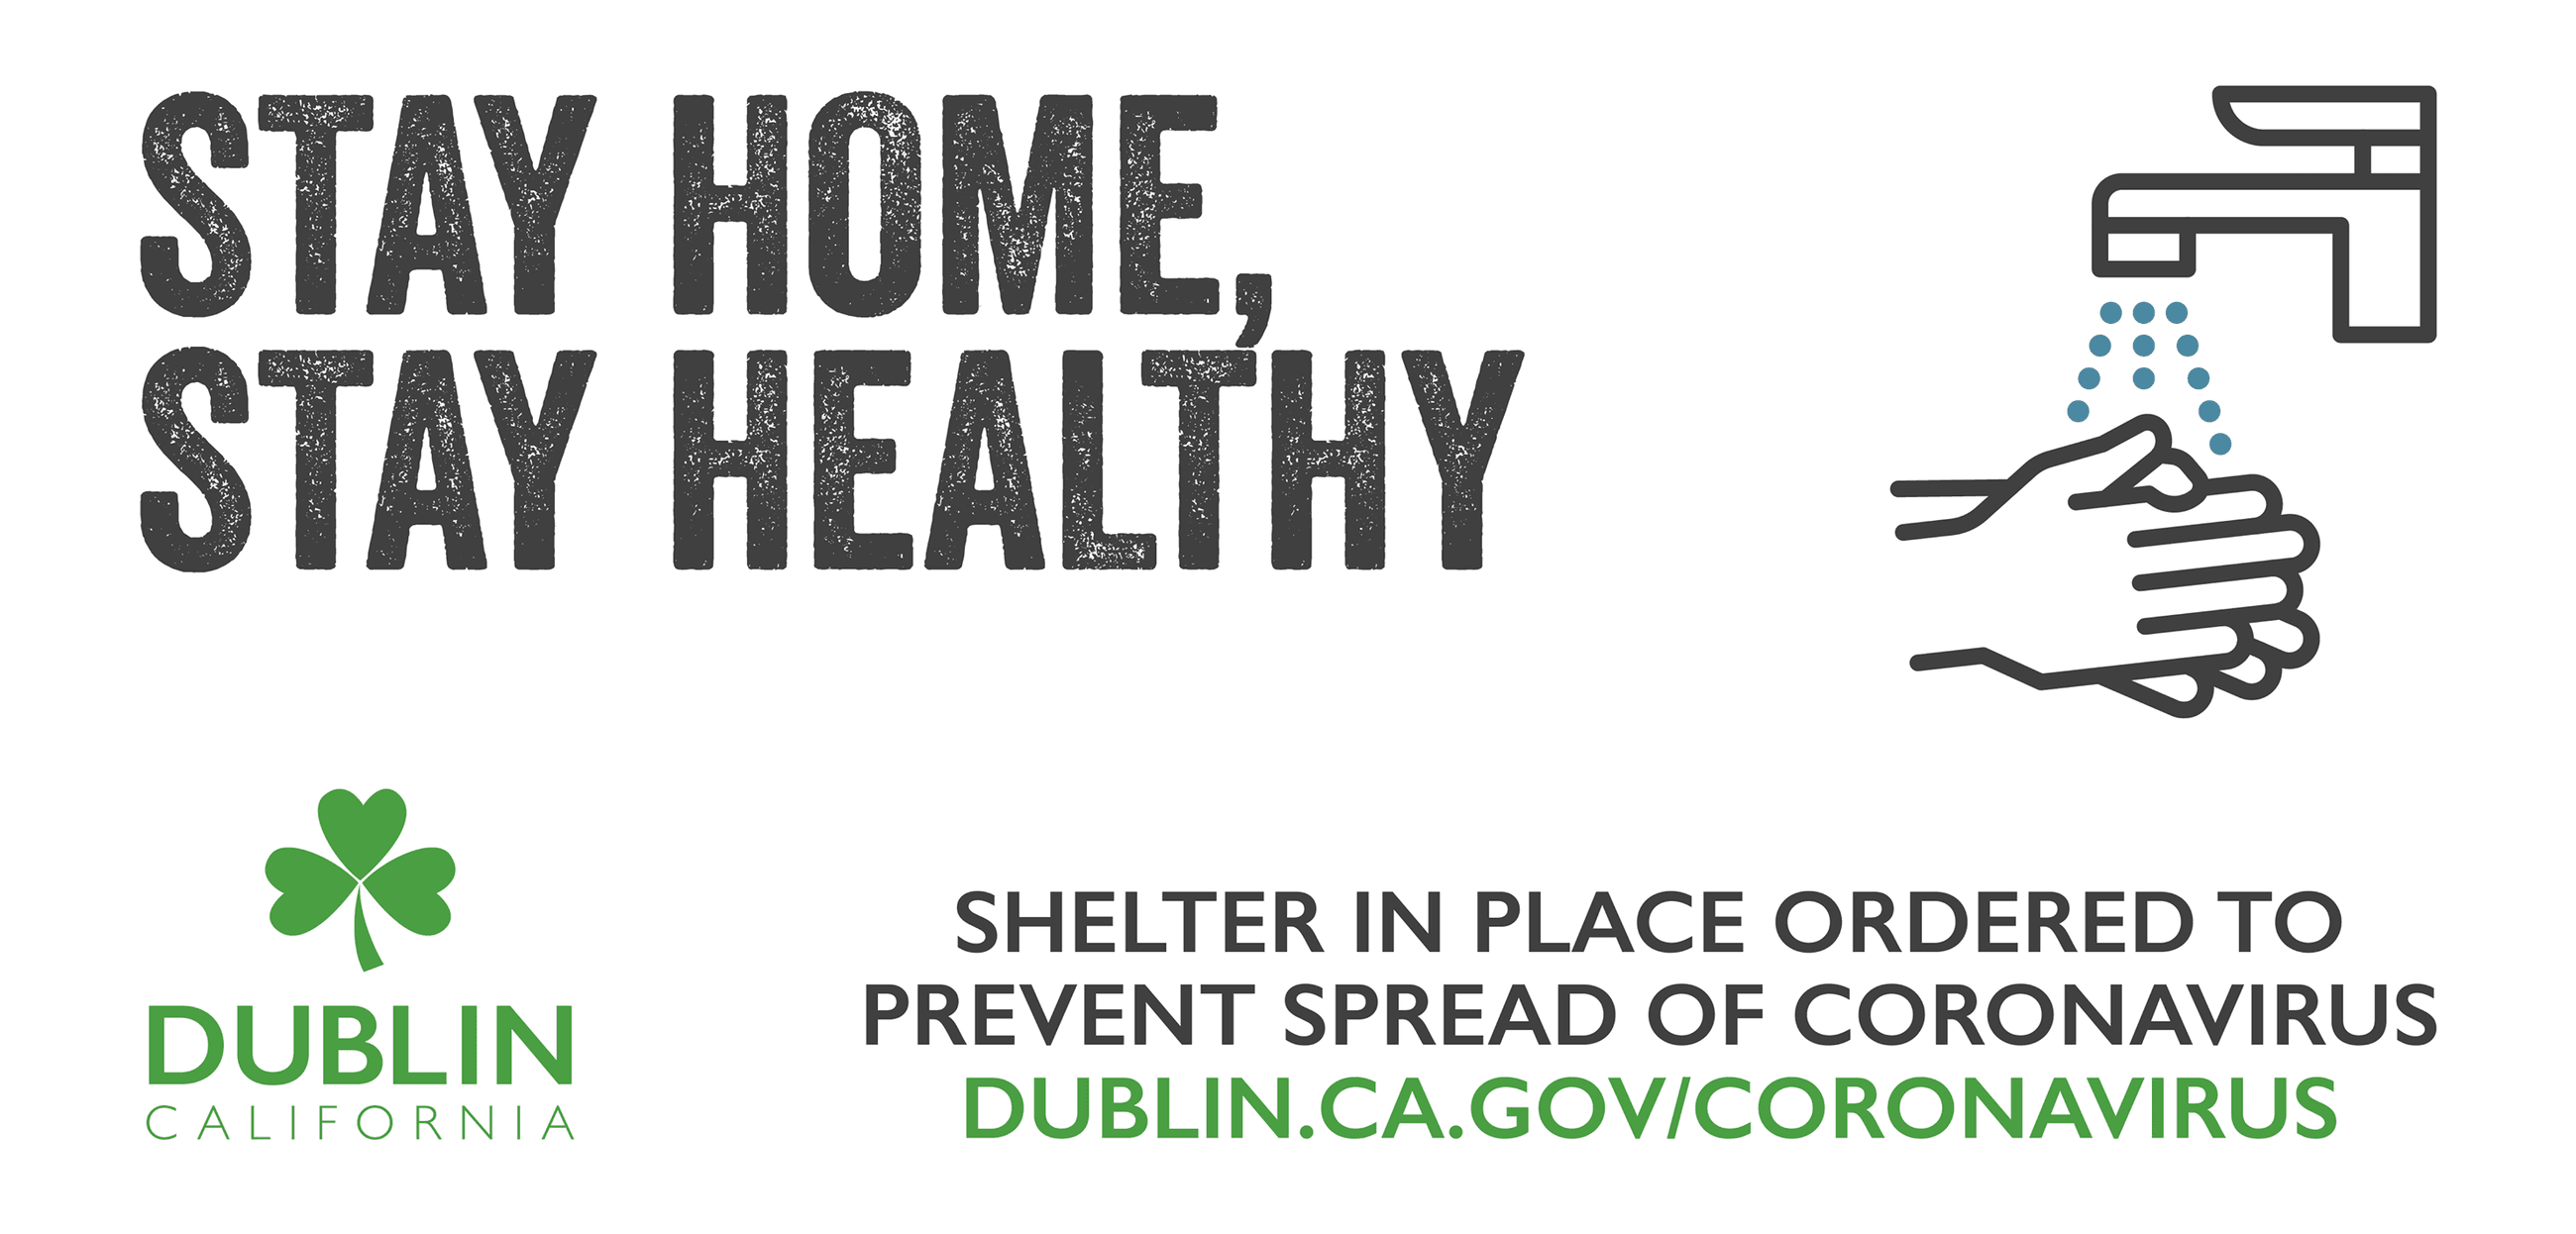 Stay Home, Stay Healthy - Shelter in Place Order - City of Dublin 2020